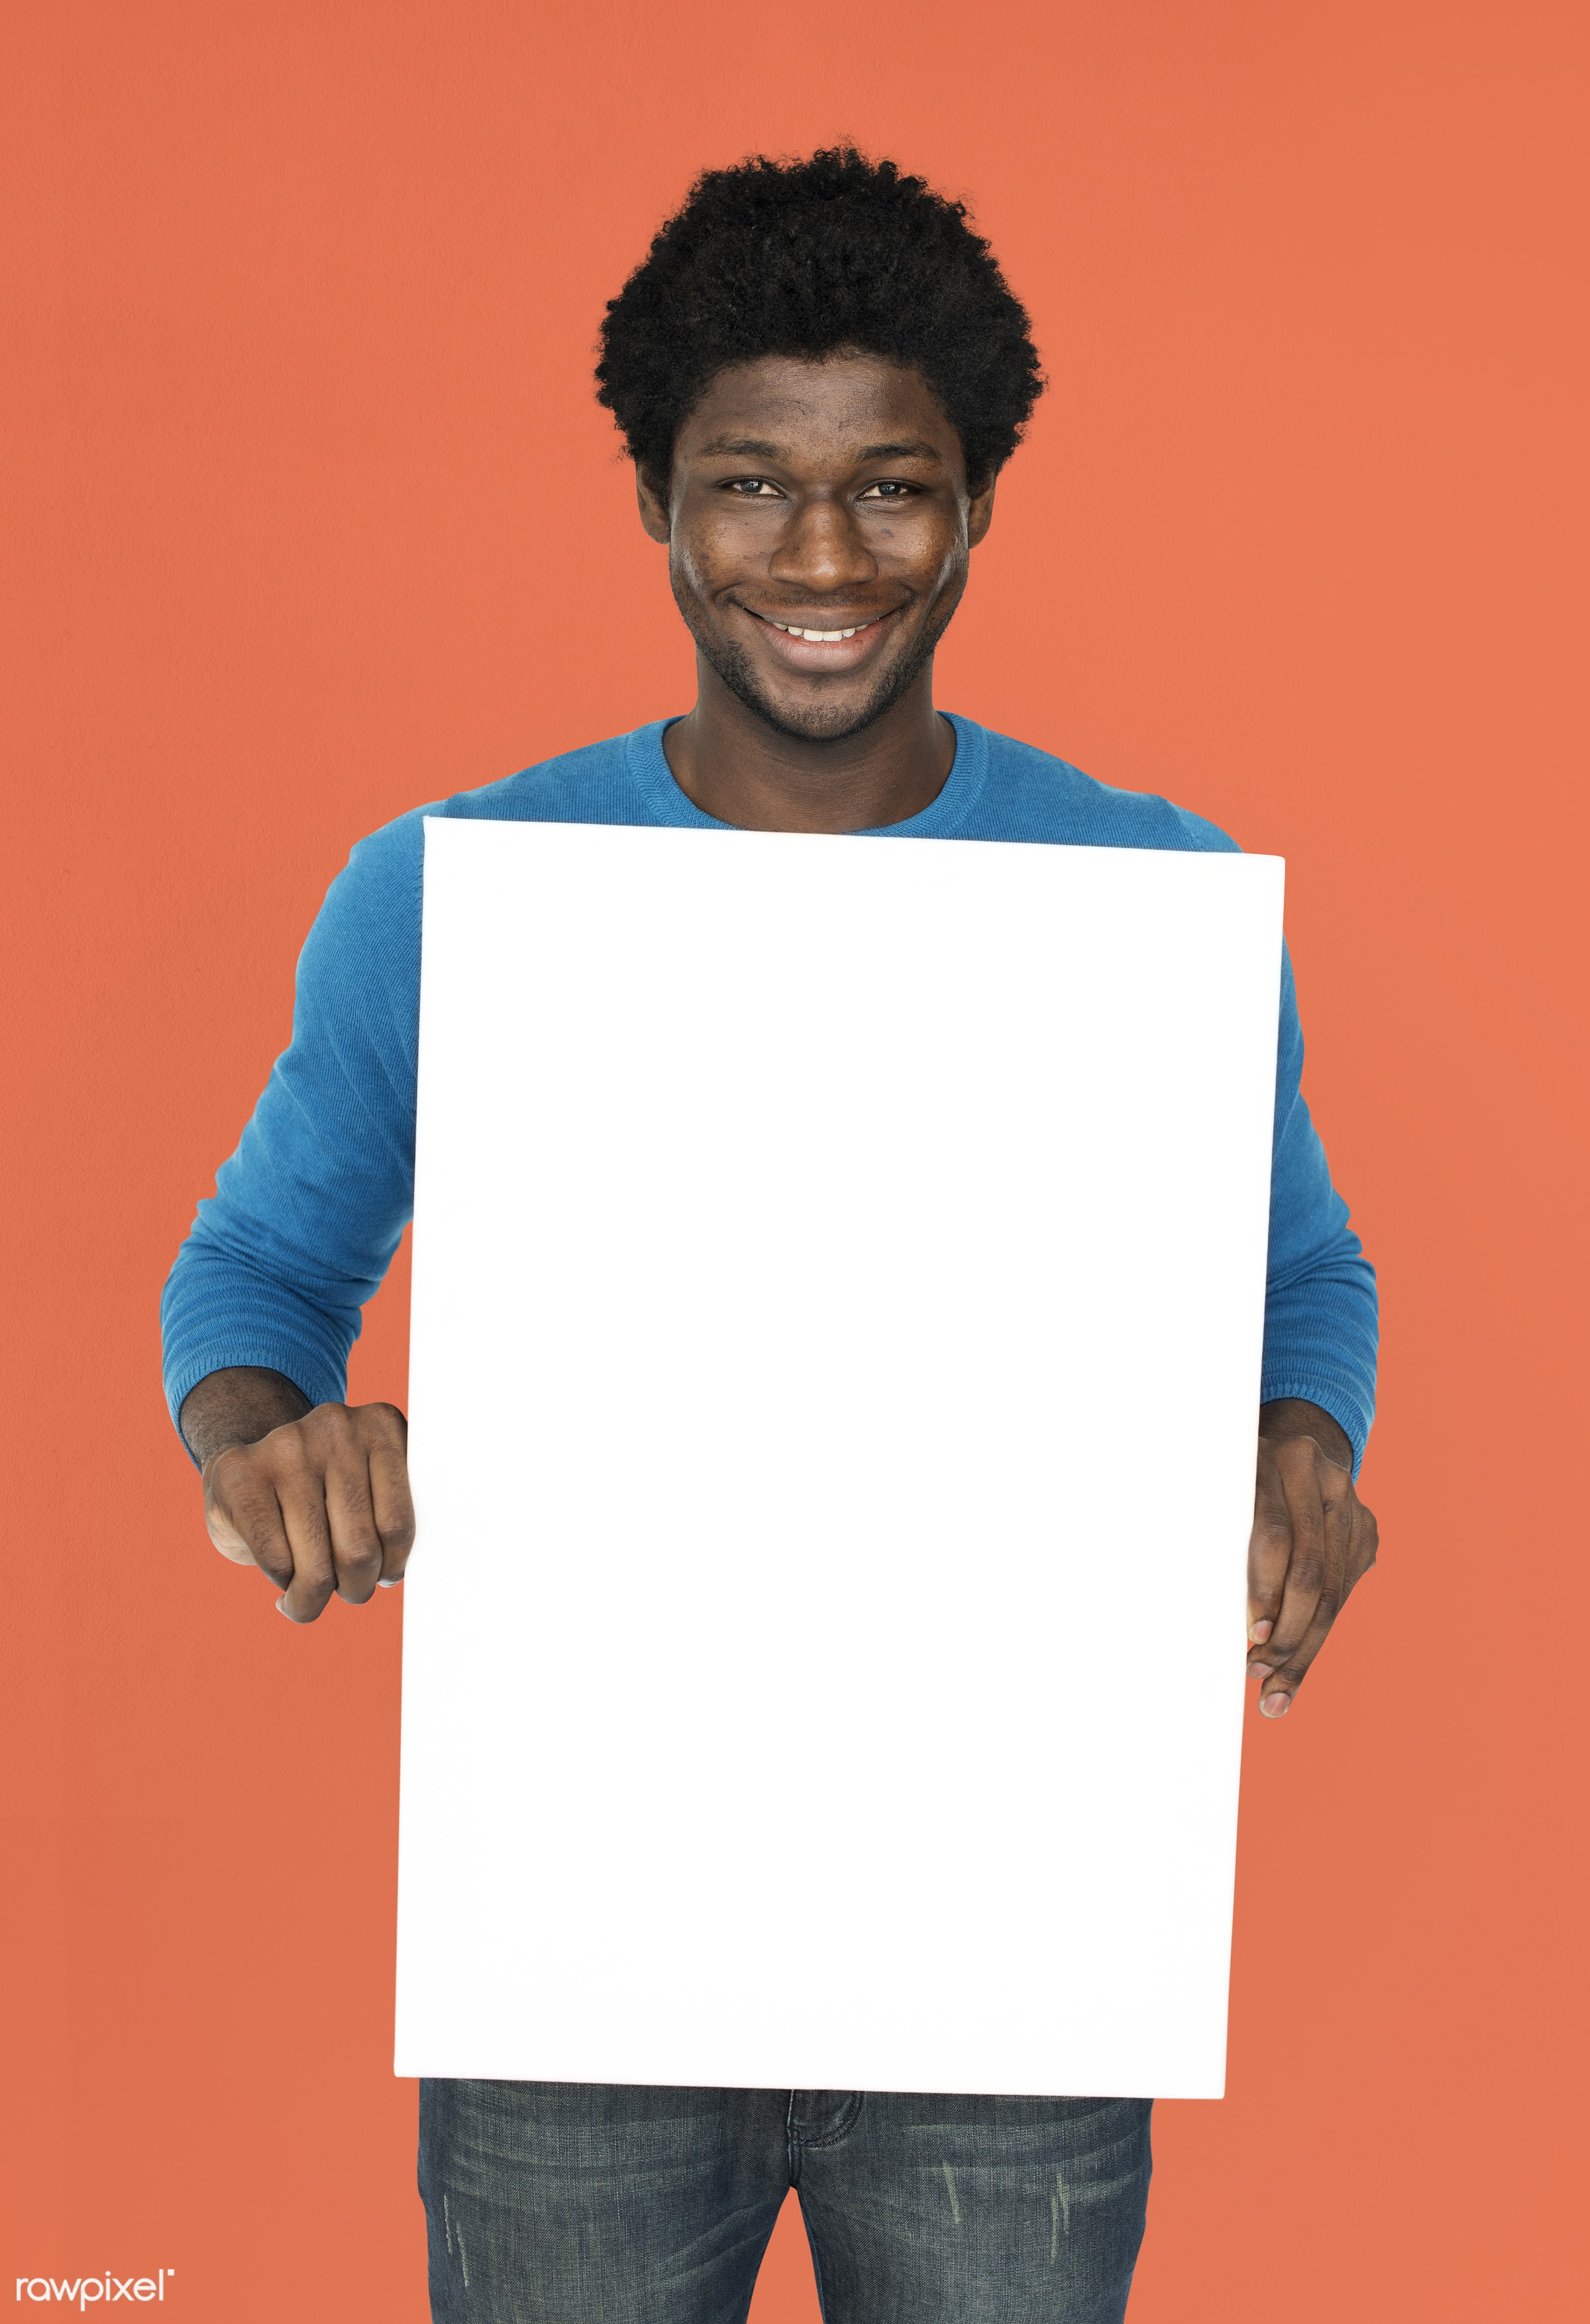 studio, expression, person, holding, people, empty, cheerful, smiling, black, isolated, african descent, white, happiness,...